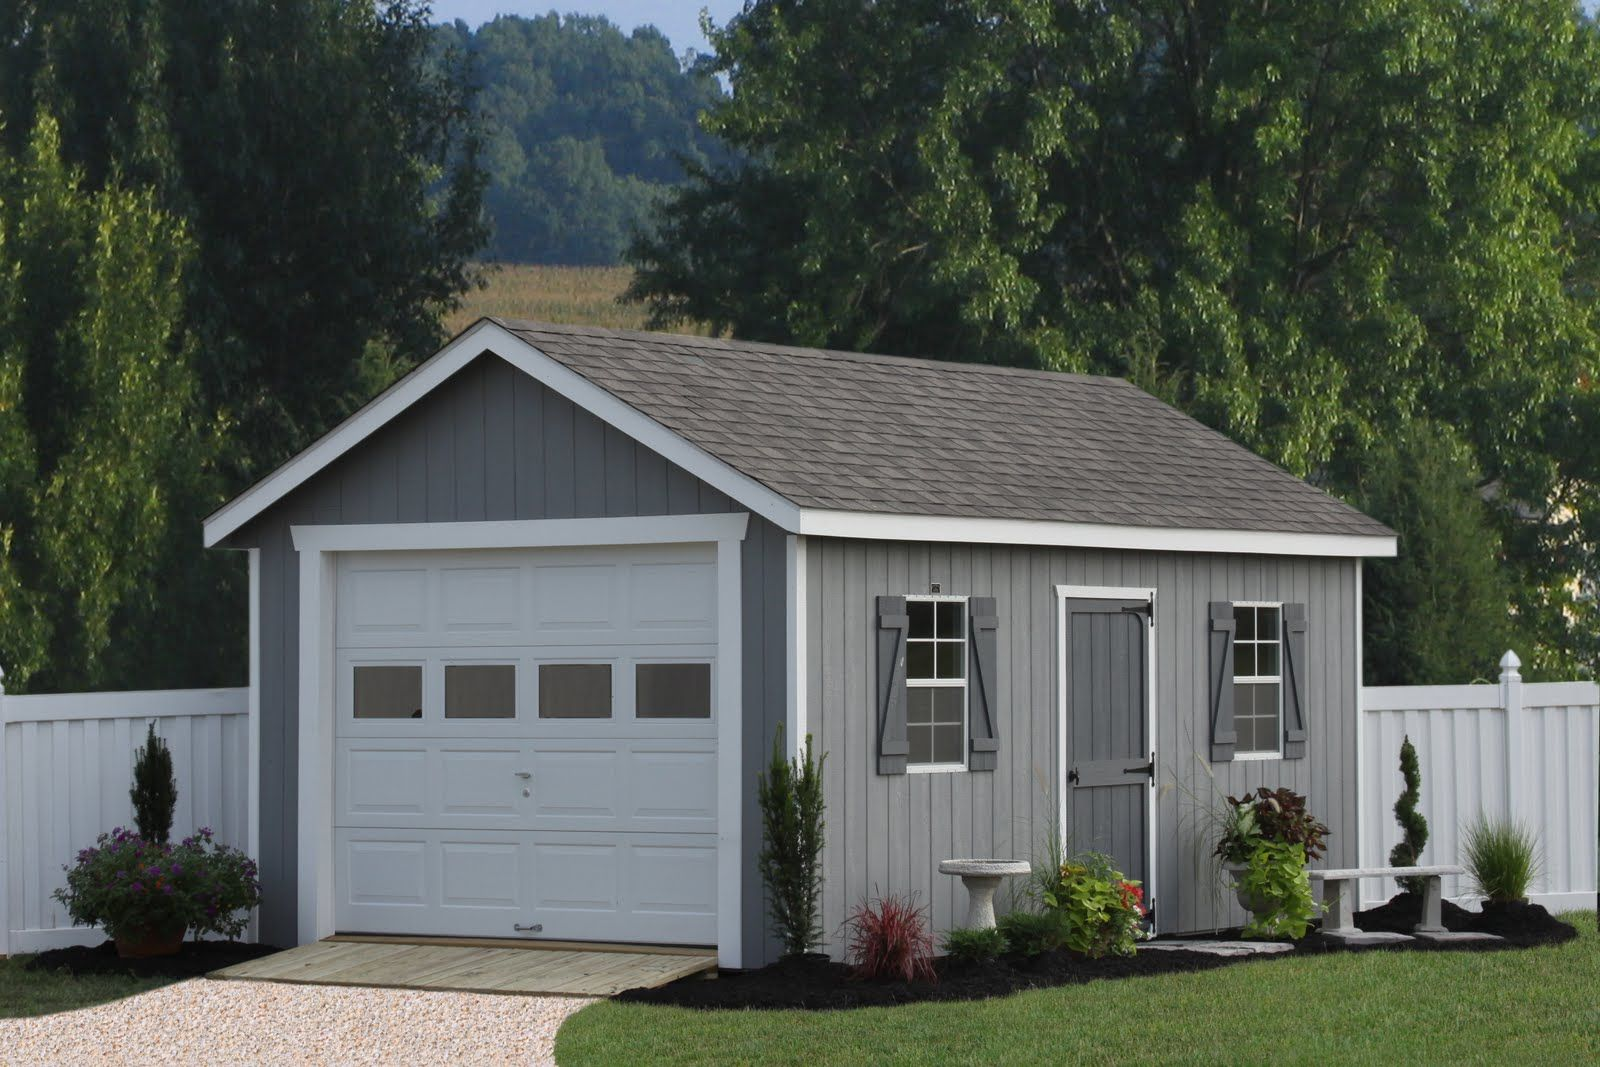 Add on garage plans 12x20 classic one car garage for Prefab 2 car detached garage